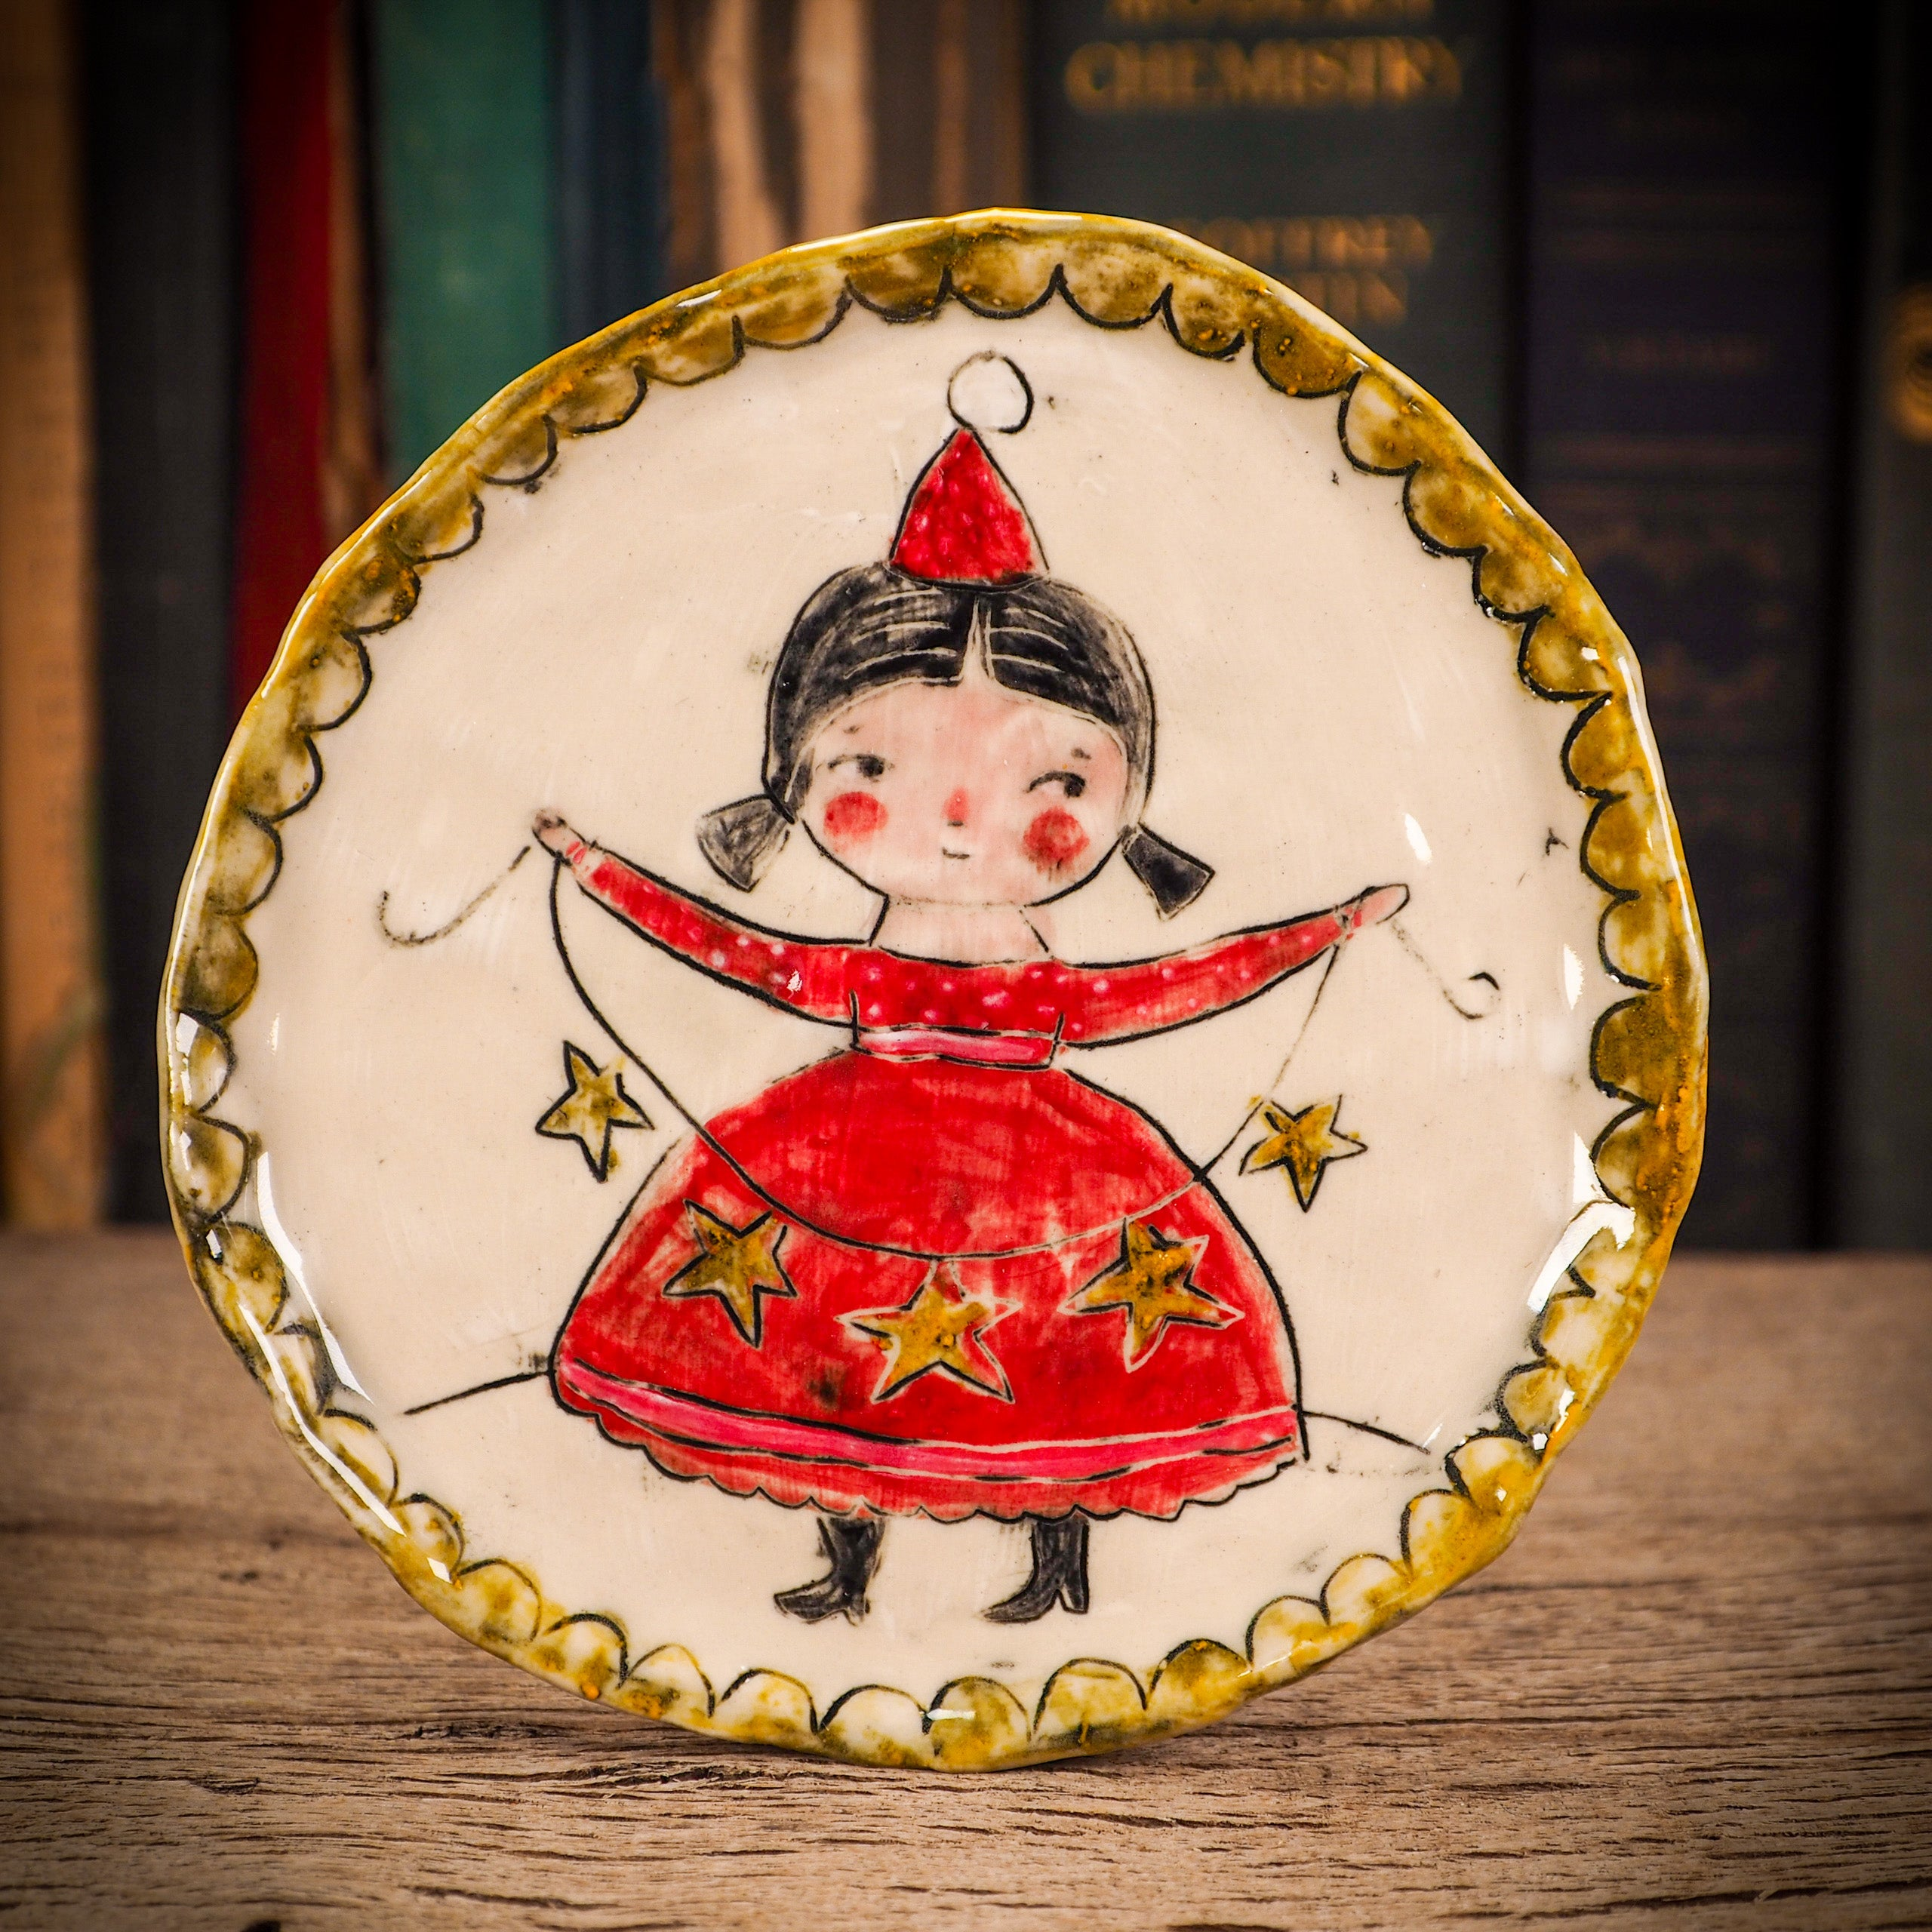 An original Christmas Holiday cake dinner plate round glazed ceramic dinnerware handmade by Idania Salcido, the artist behind Danita Art. Glazed carved sgraffito stoneware, hand painted and decorated, it is illustrated by hand with snowmen, Christmas trees, Santa Claus, angels and snow balls and winter themes.